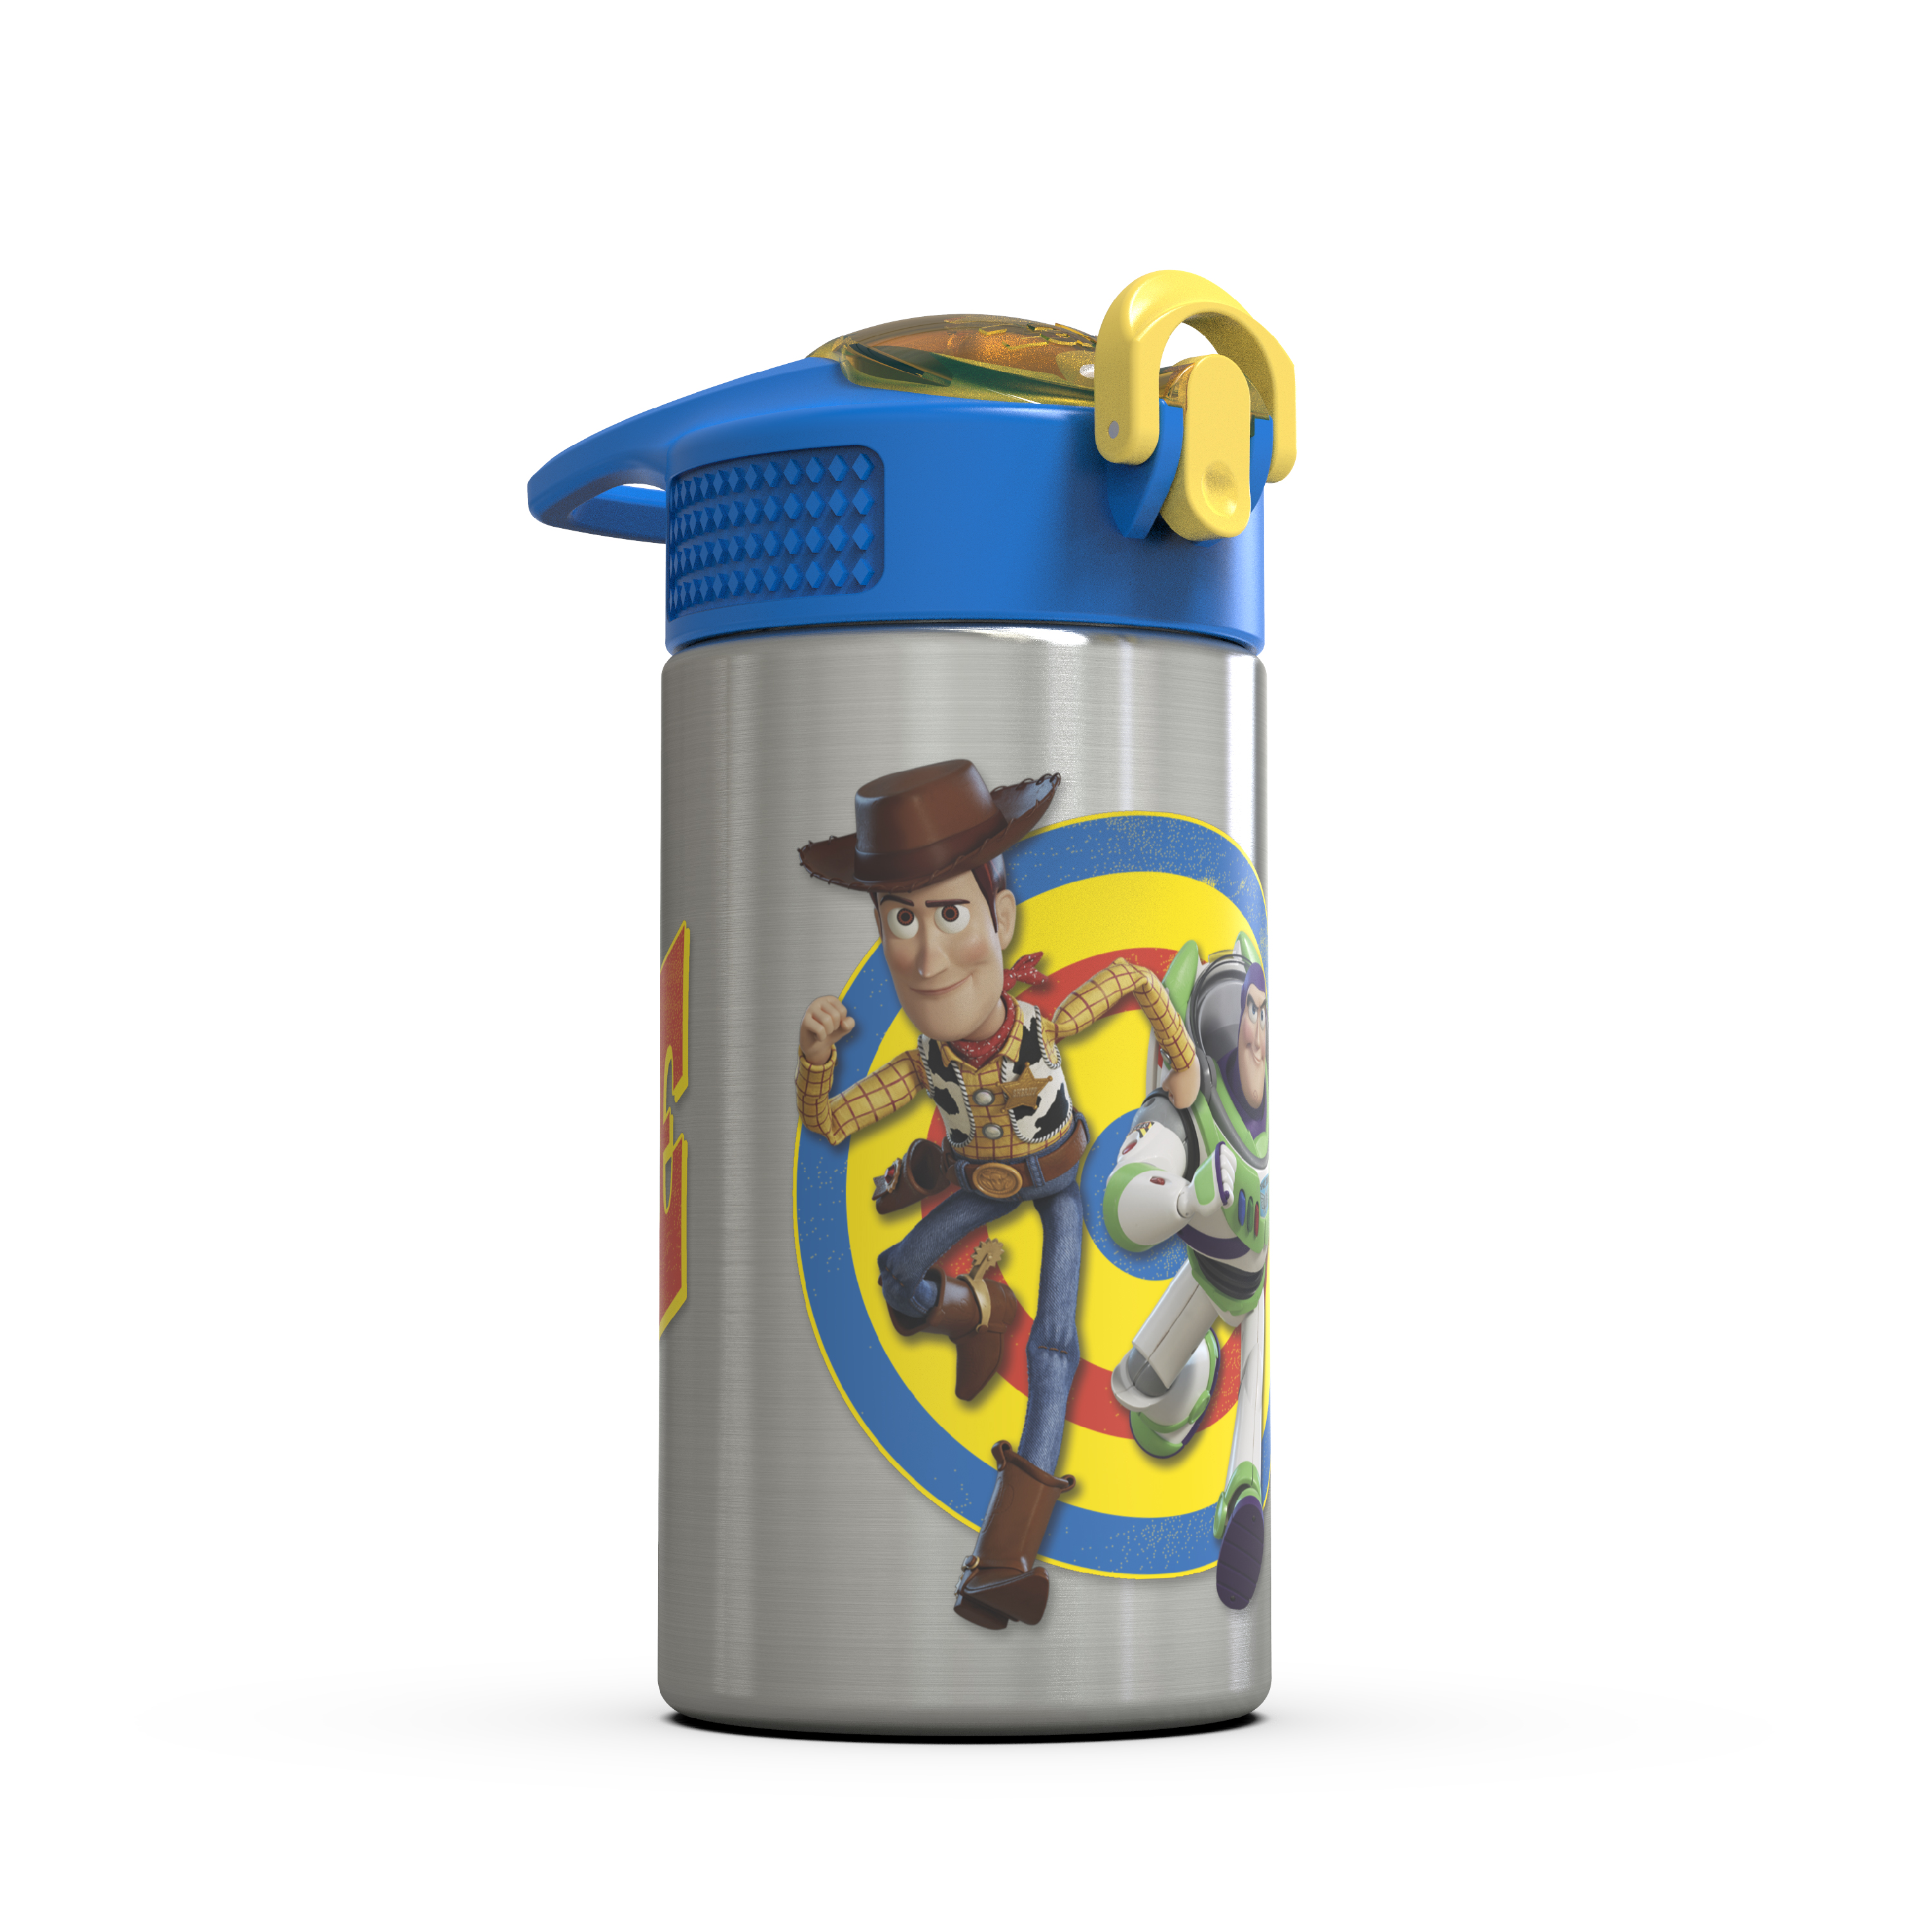 Toy Story 4 15.5 ounce Water Bottle, Buzz & Woody slideshow image 15